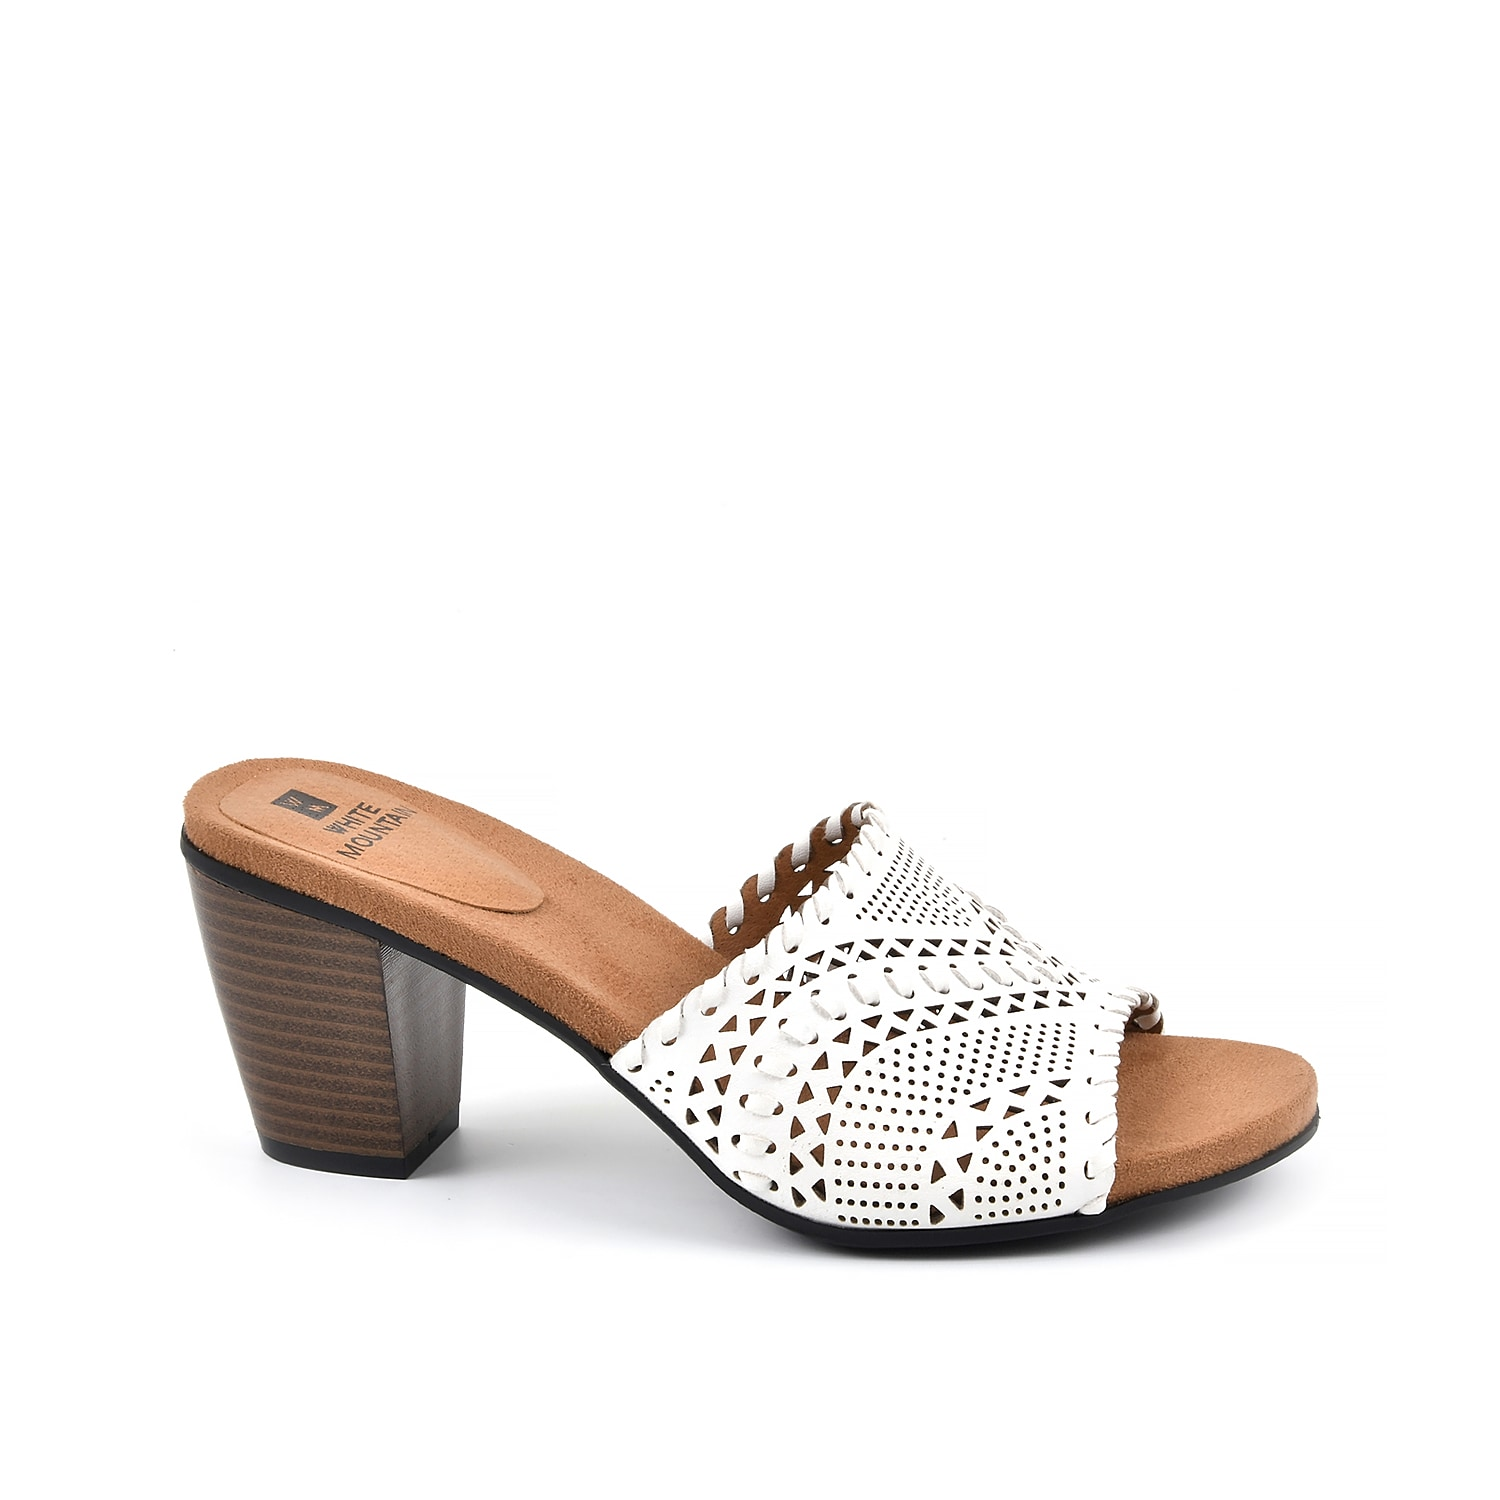 Slide into the Sherman sandal from White Mountain for modern appeal. This pair features a laser-cut upper and chunky block heel that will complement all your maxi dresses or midi skirts.